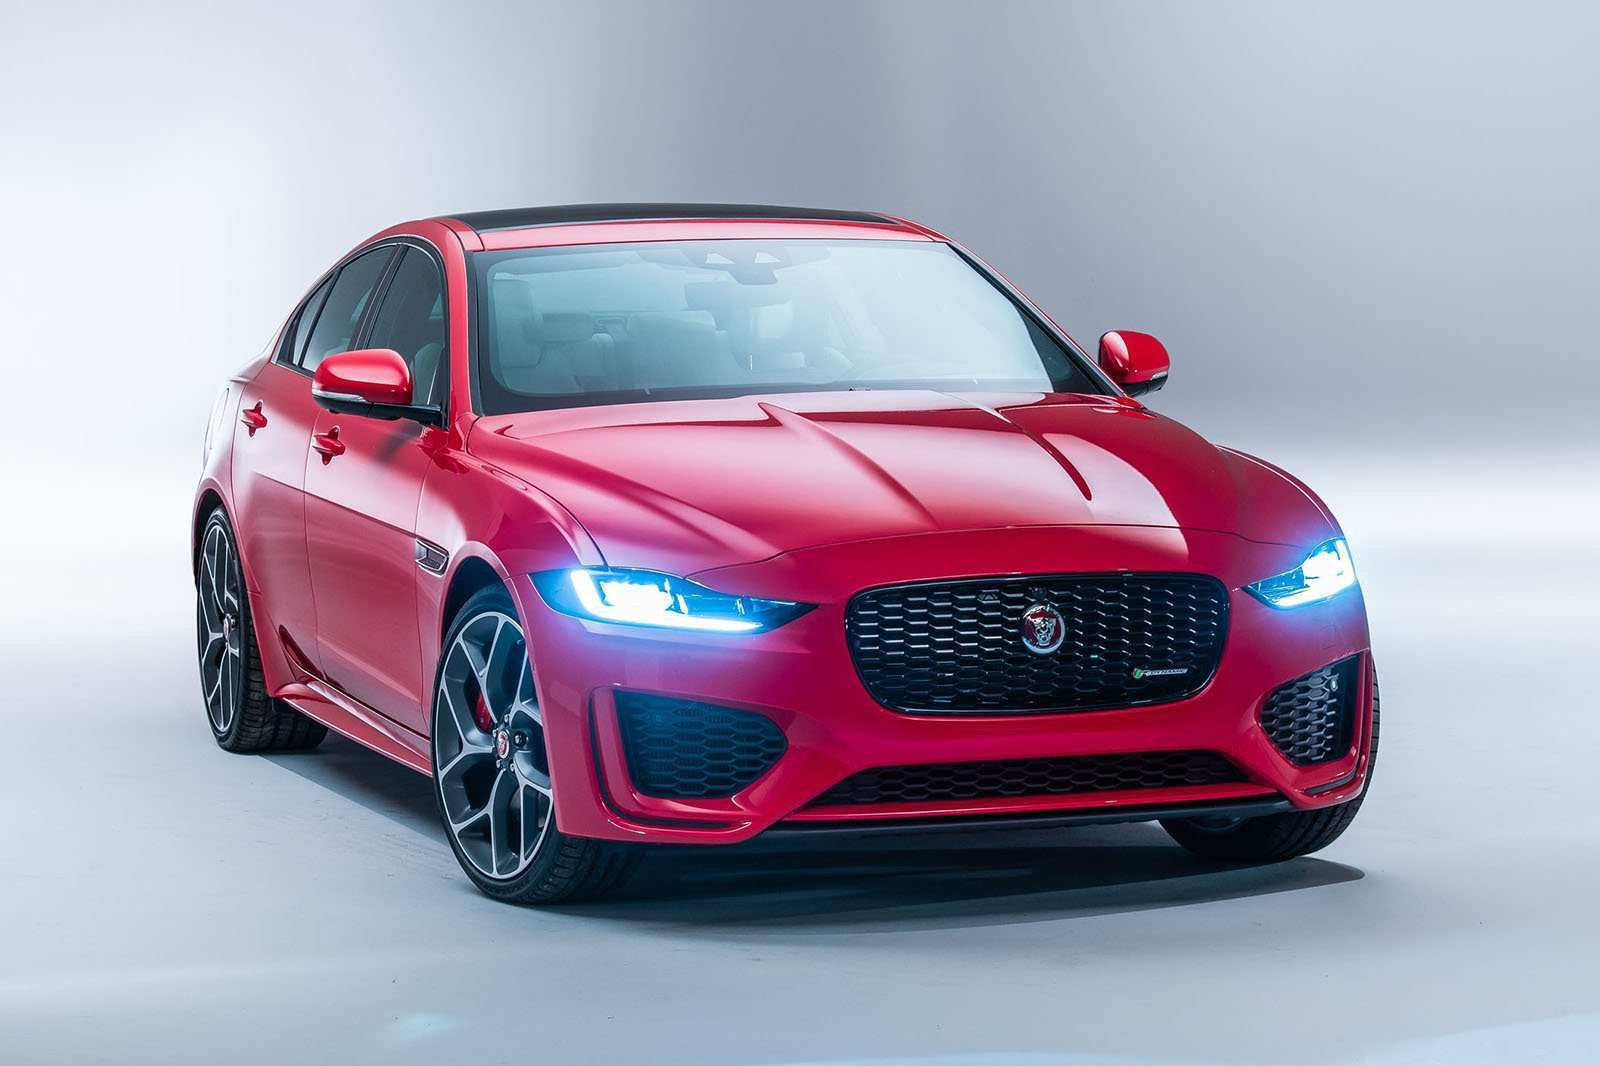 39 All New 2019 Jaguar Cost Specs Style with 2019 Jaguar Cost Specs